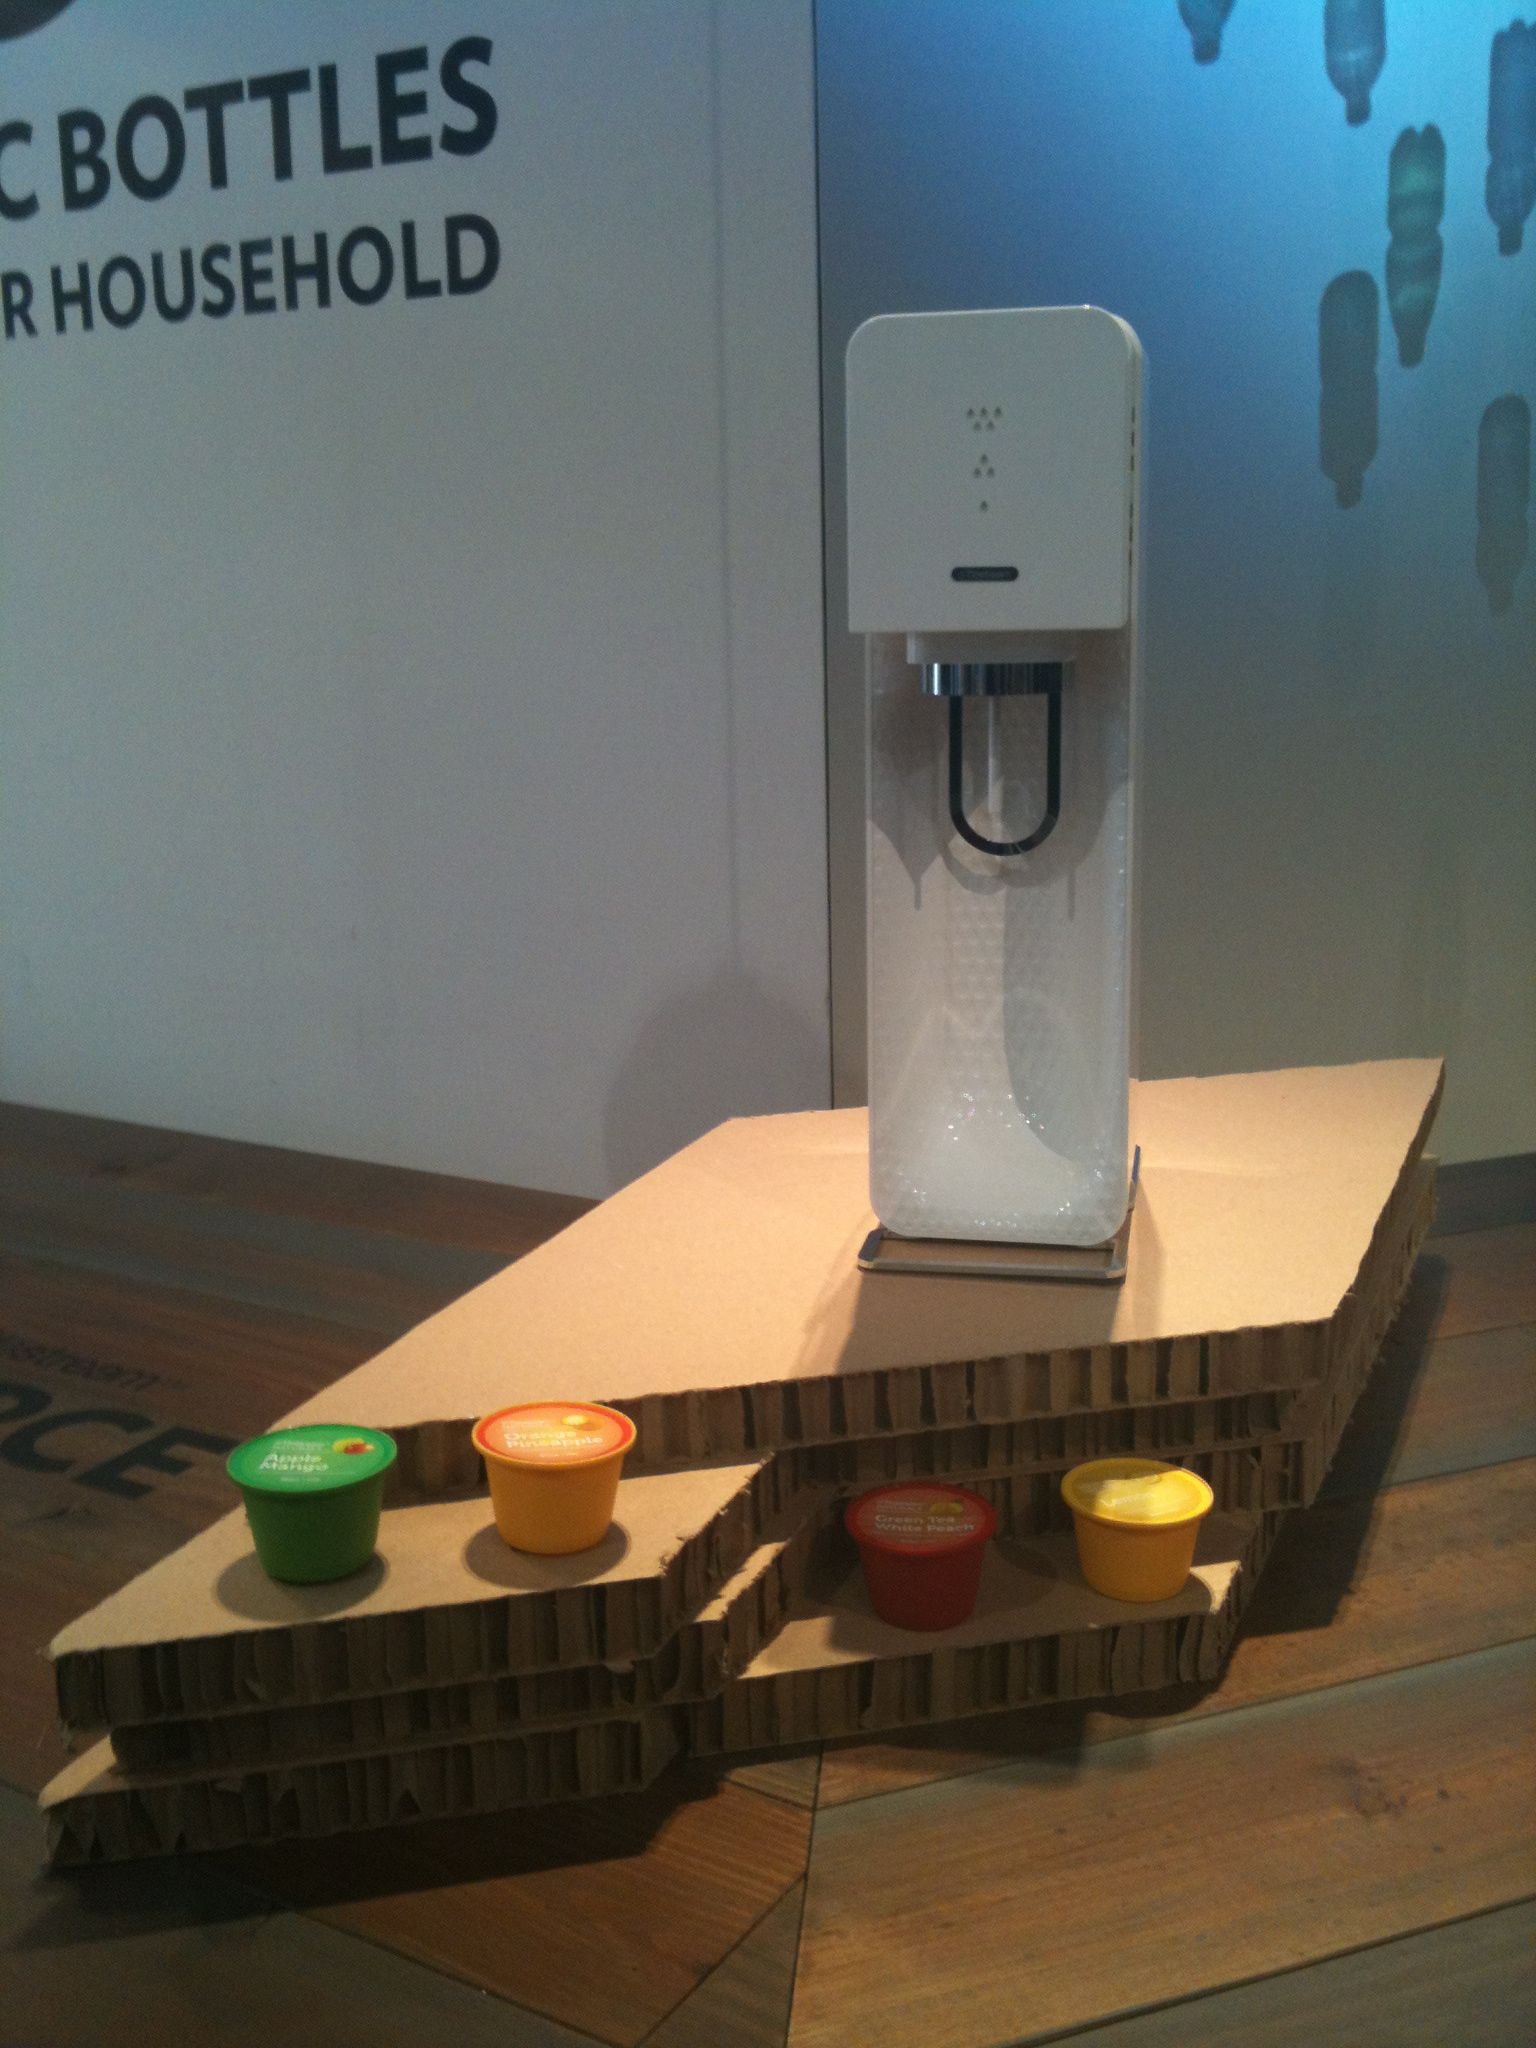 New soda source by Yves Behar to make soda out of still water.